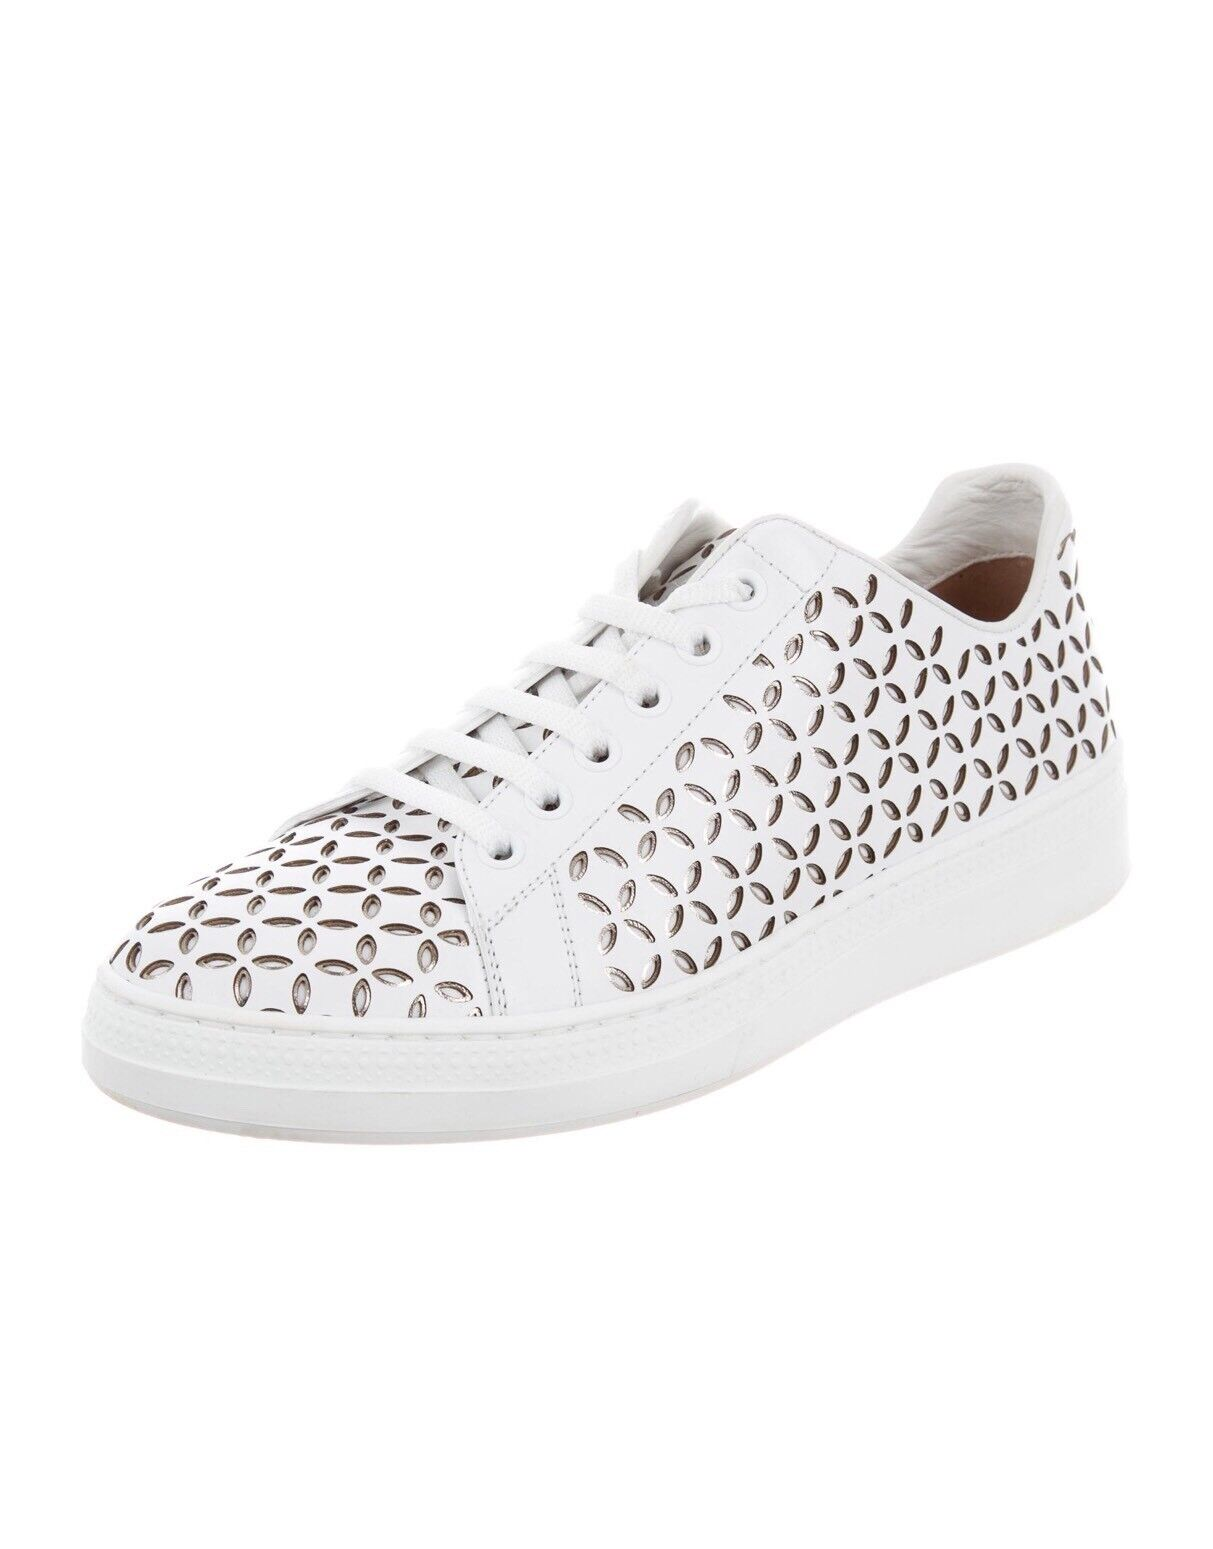 New Alaia Weiß Leather Flower-Print Laser Cut Low-Top Turnschuhe 40 10US  995.00